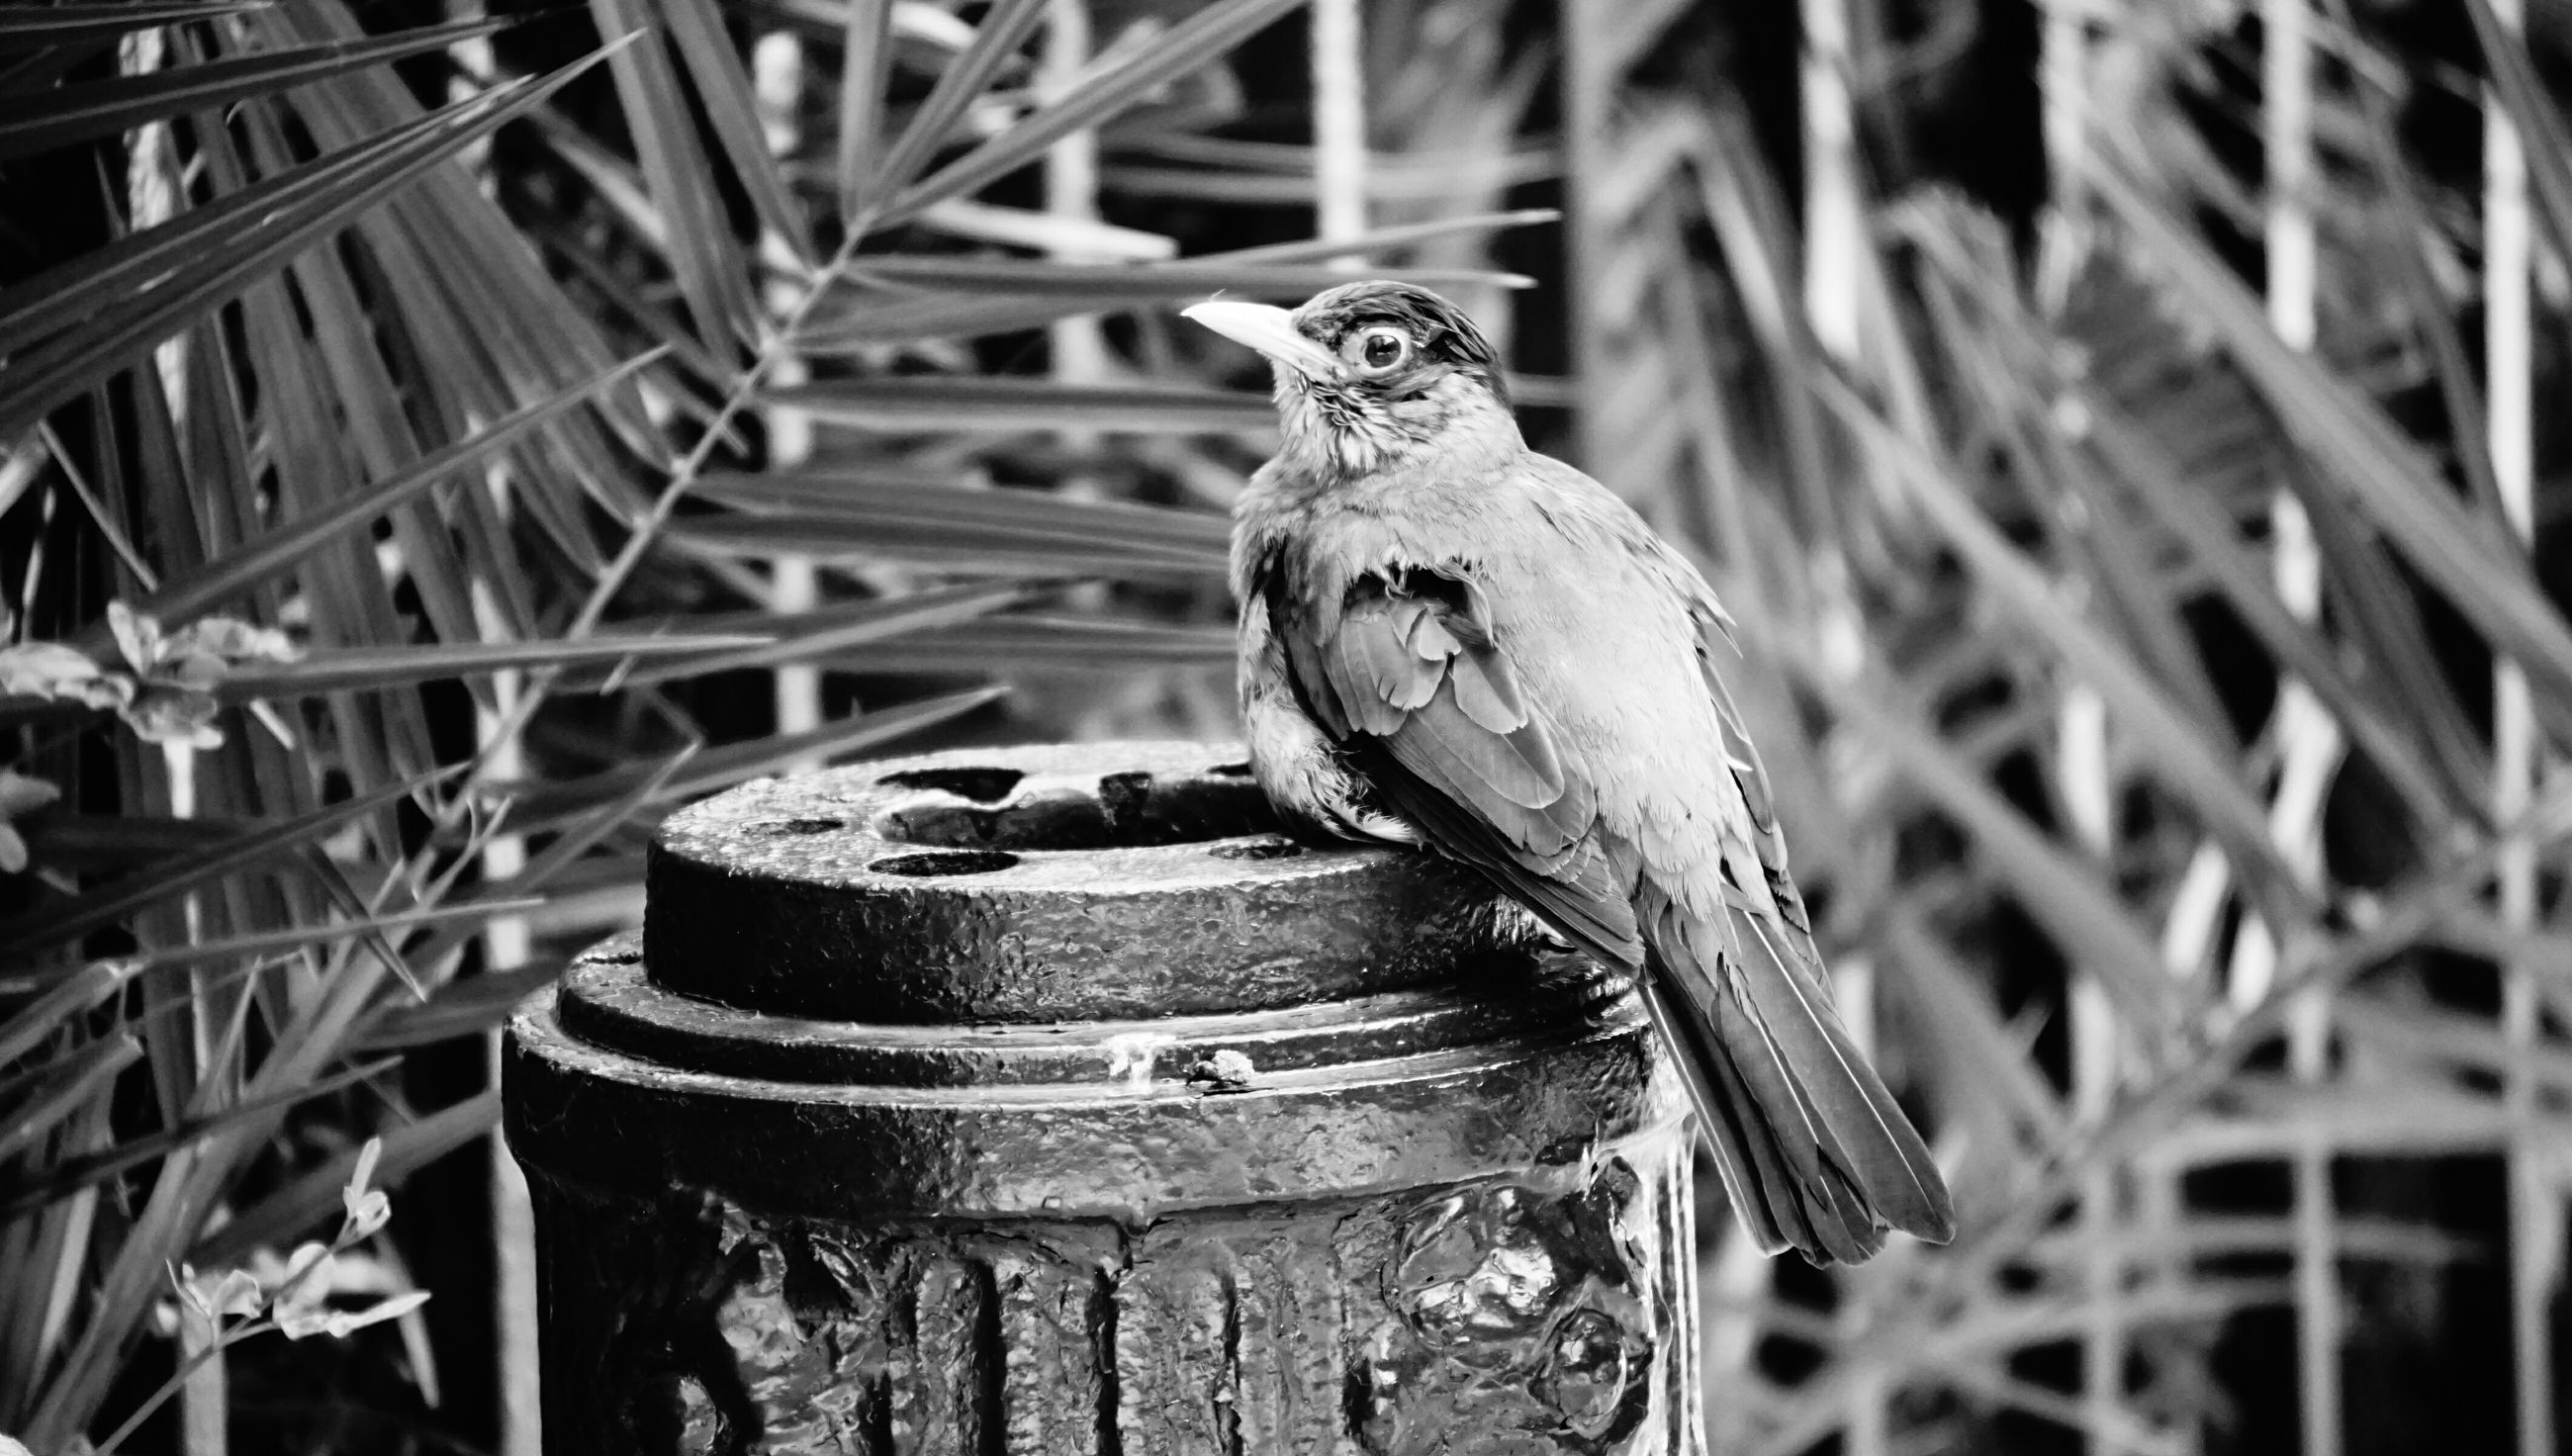 focus on foreground, metal, close-up, one animal, animal themes, outdoors, day, animals in the wild, metallic, no people, wildlife, old, rusty, bird, perching, low angle view, selective focus, built structure, nature, part of